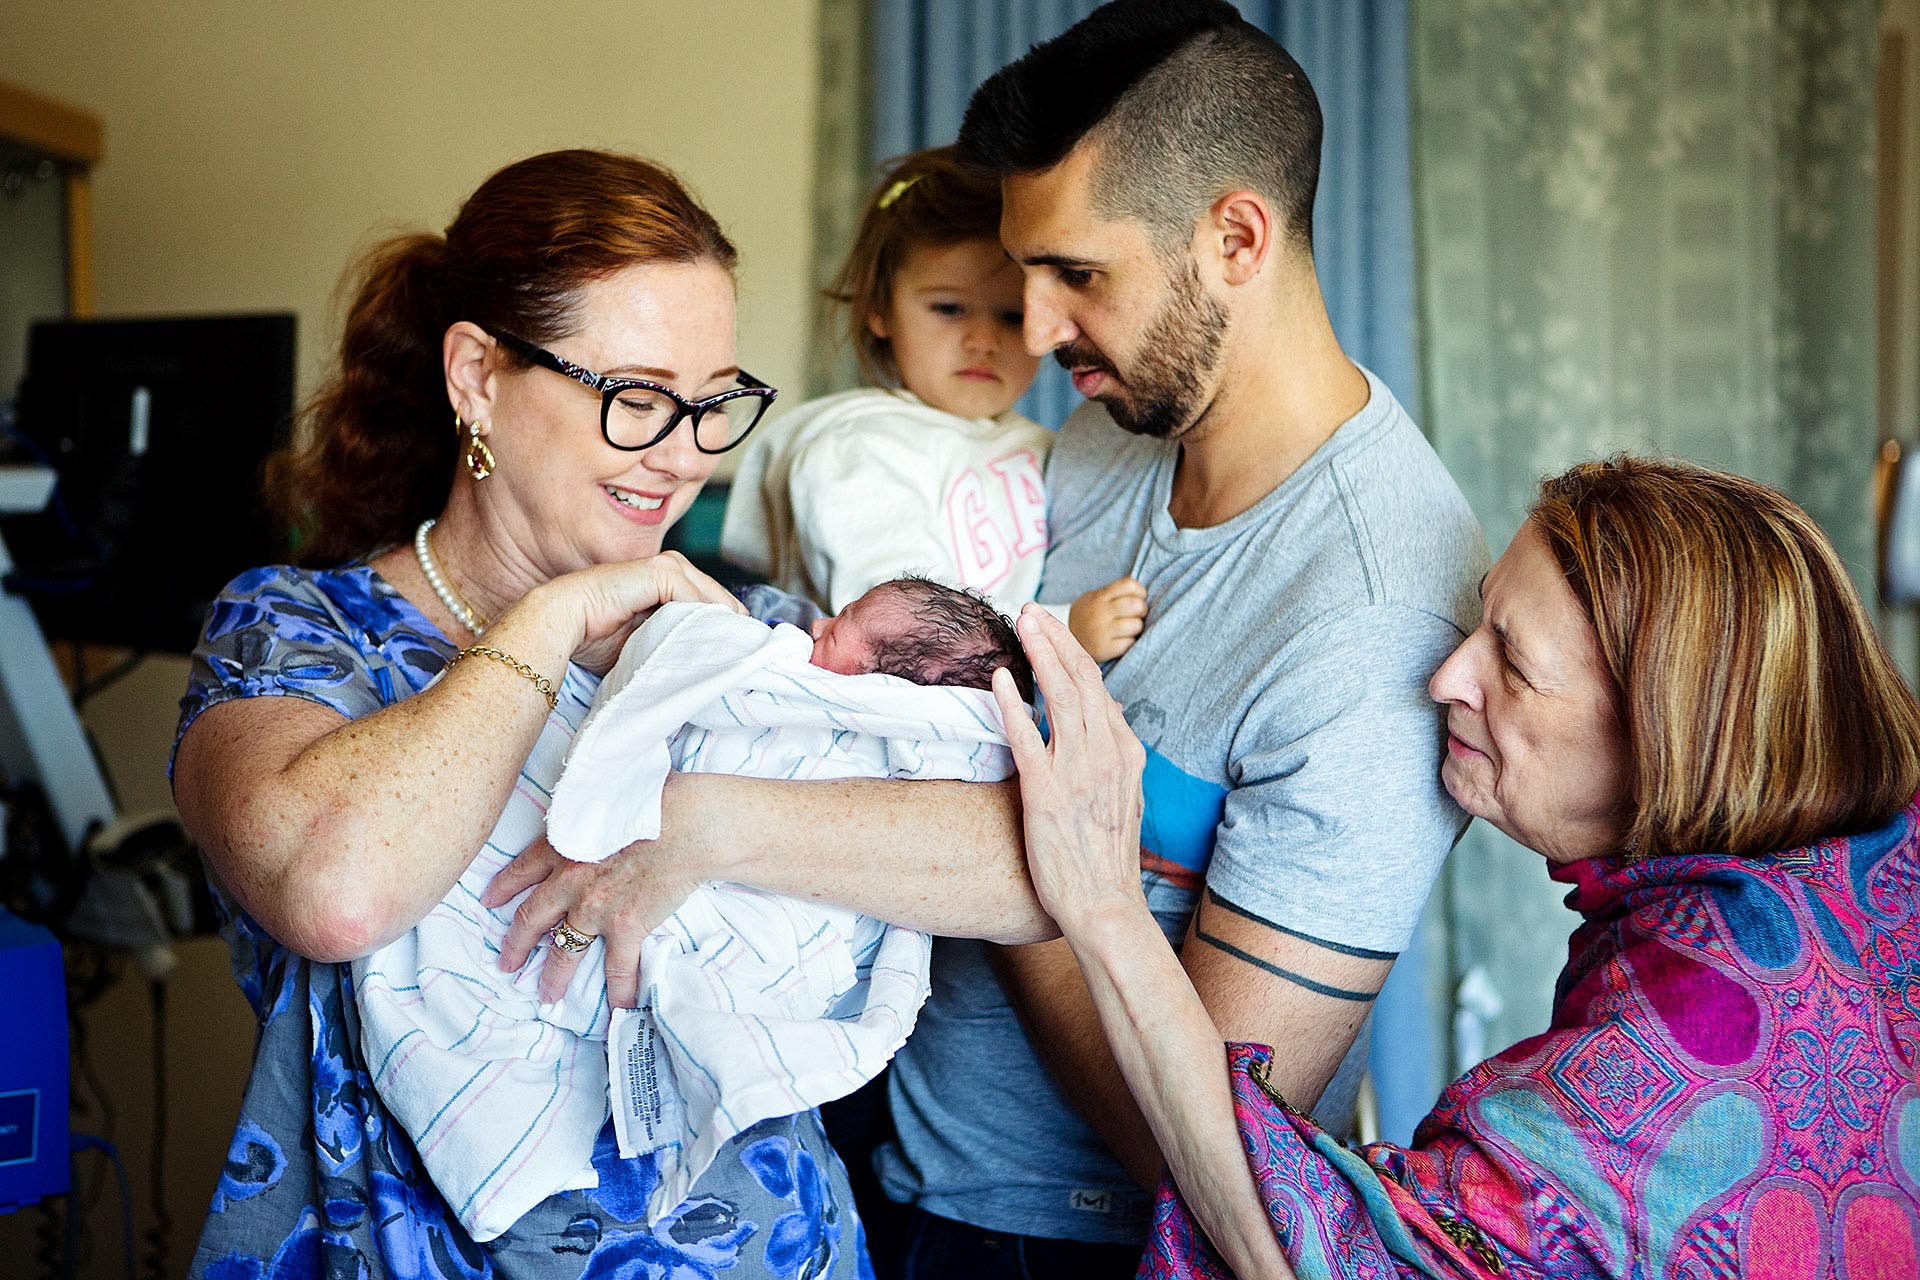 Los Angeles birth photography photo of the extended family meeting a new born baby at Adventist Health Glendale.